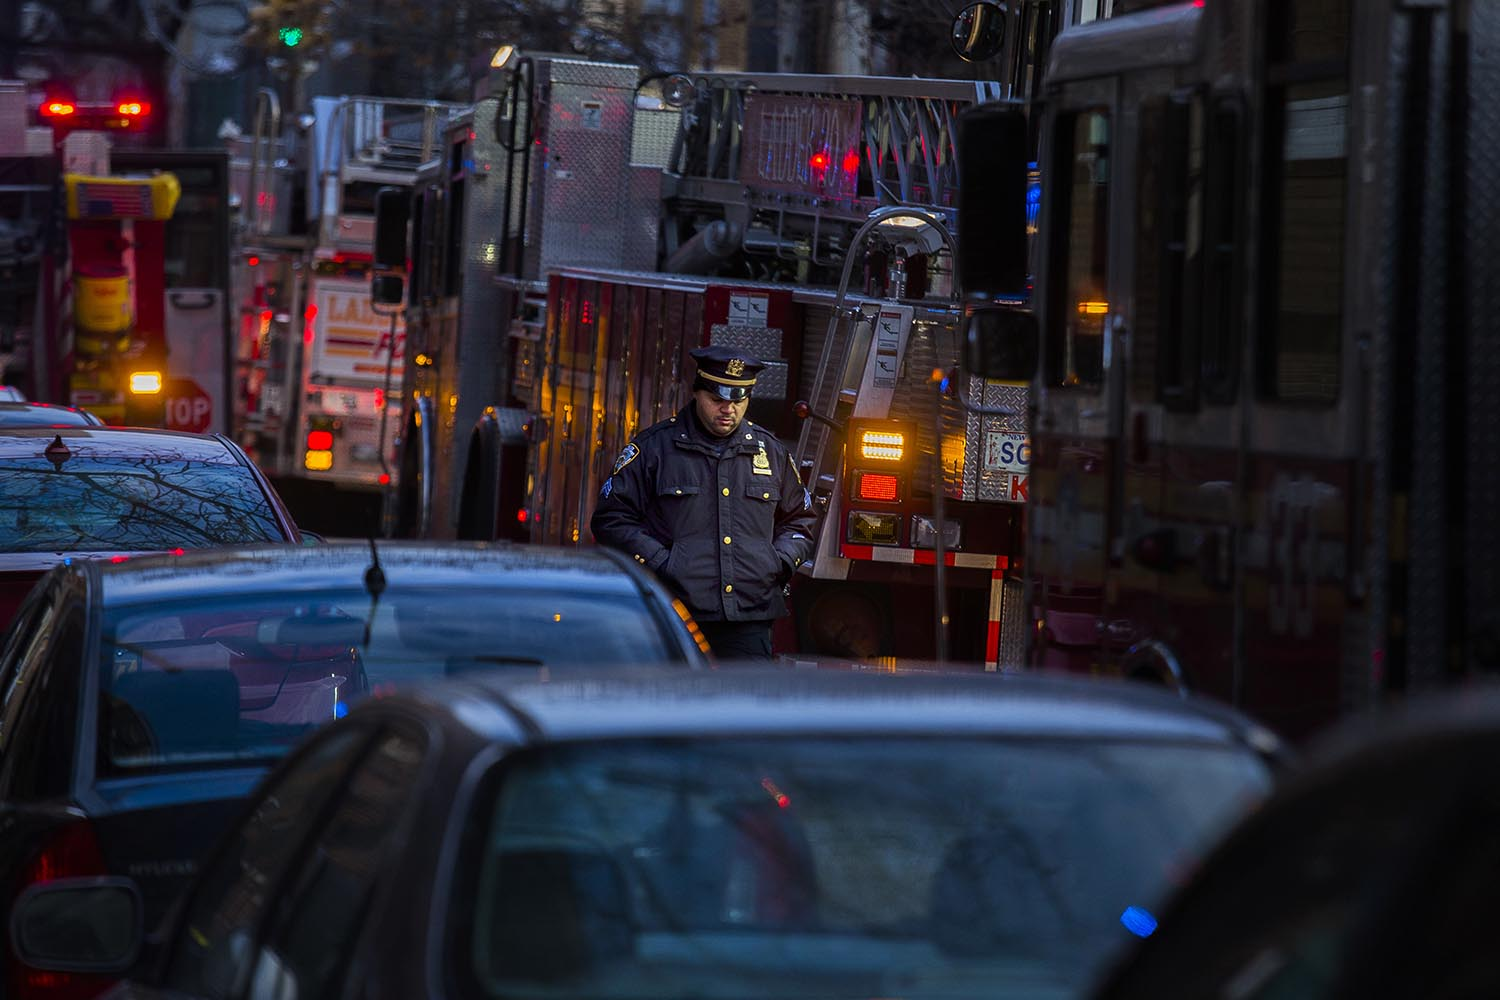 """<div class=""""meta image-caption""""><div class=""""origin-logo origin-image ap""""><span>AP</span></div><span class=""""caption-text"""">A police officer walks in between firefighters trucks Friday, Dec. 29, 2017, in the Bronx. (AP Photo/Andres Kudacki)</span></div>"""